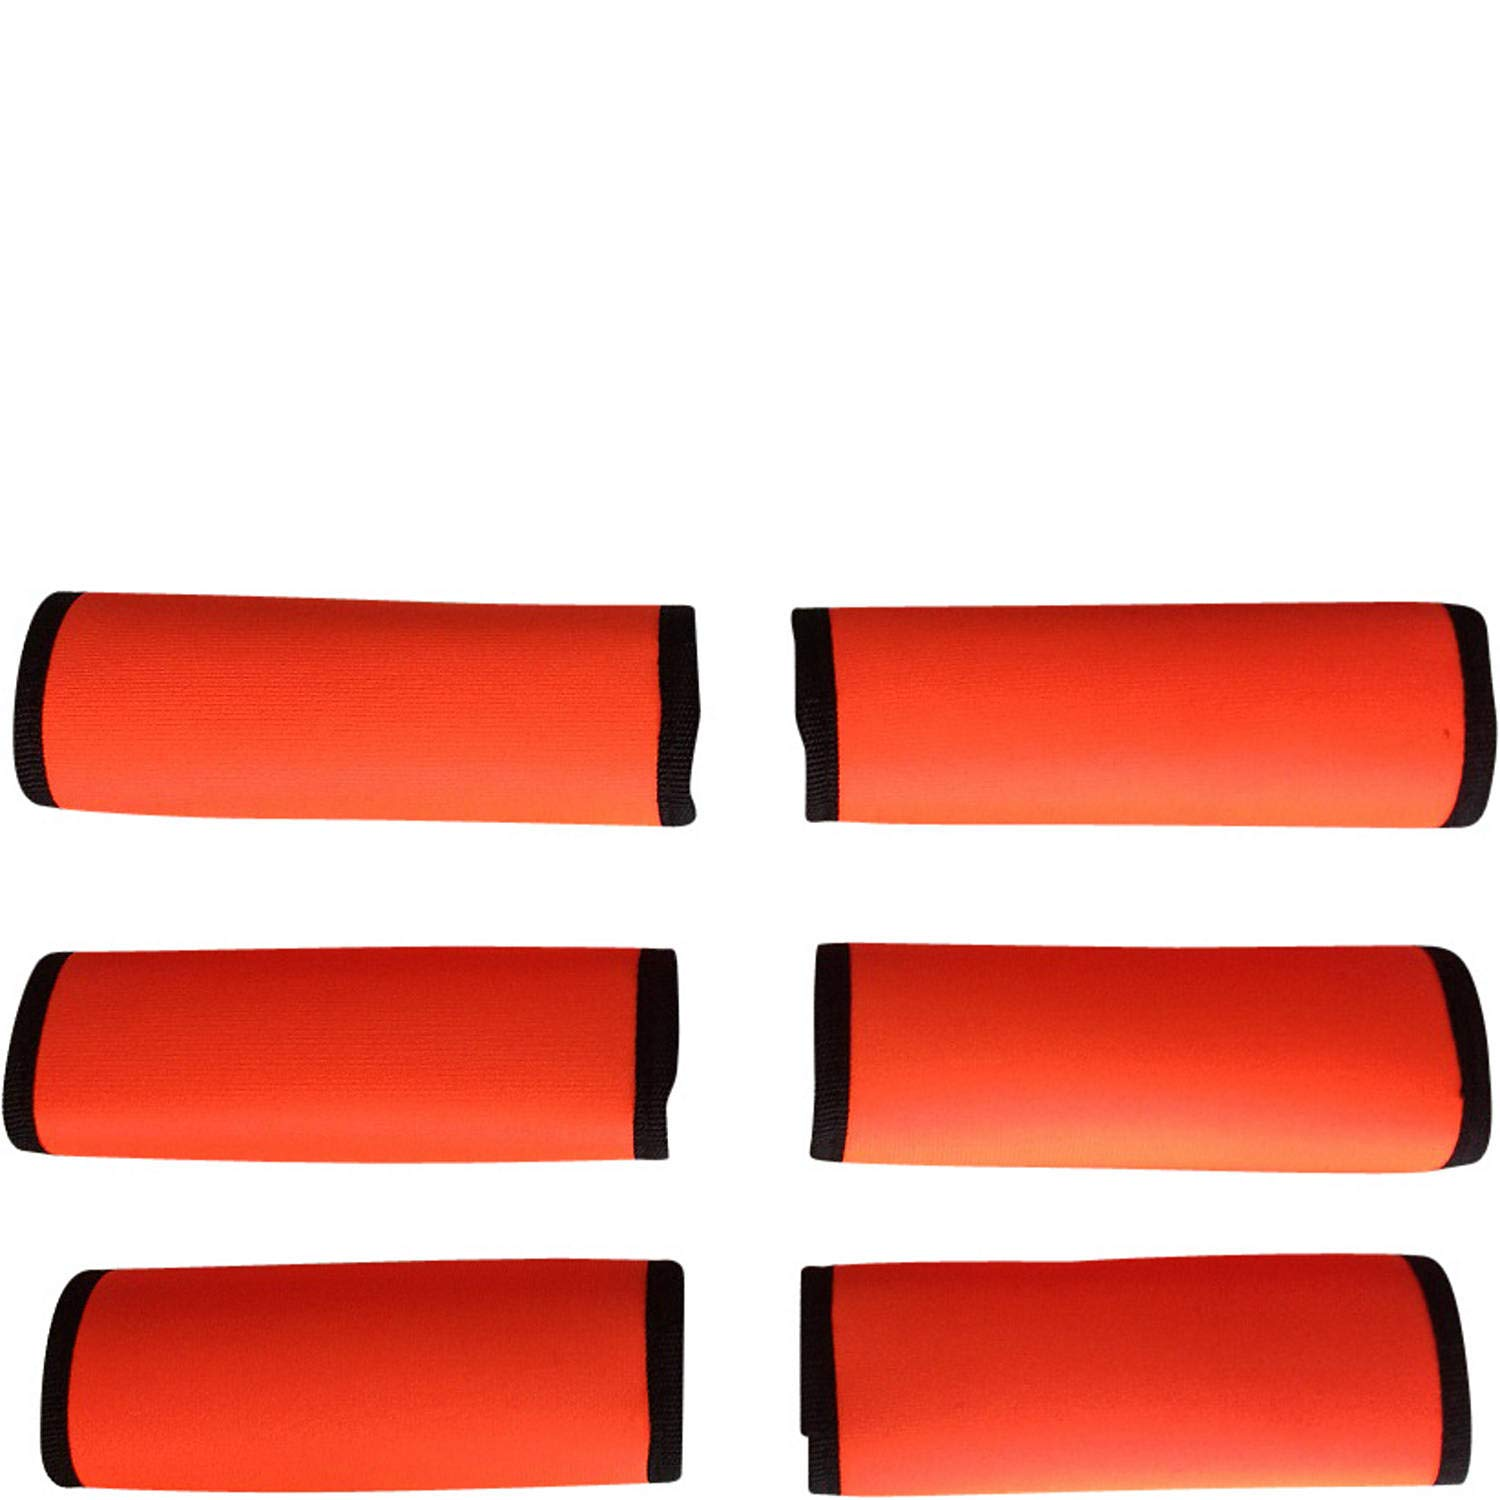 LUGGAGE SPOTTER SUPER GRABBER 50/% OFF 6 PCS ORANGE Soft Comfort Neoprene Handle Wraps Grip Luggage Identifier for Travel Bags Suitcases Heavy Grocery Bags and More!